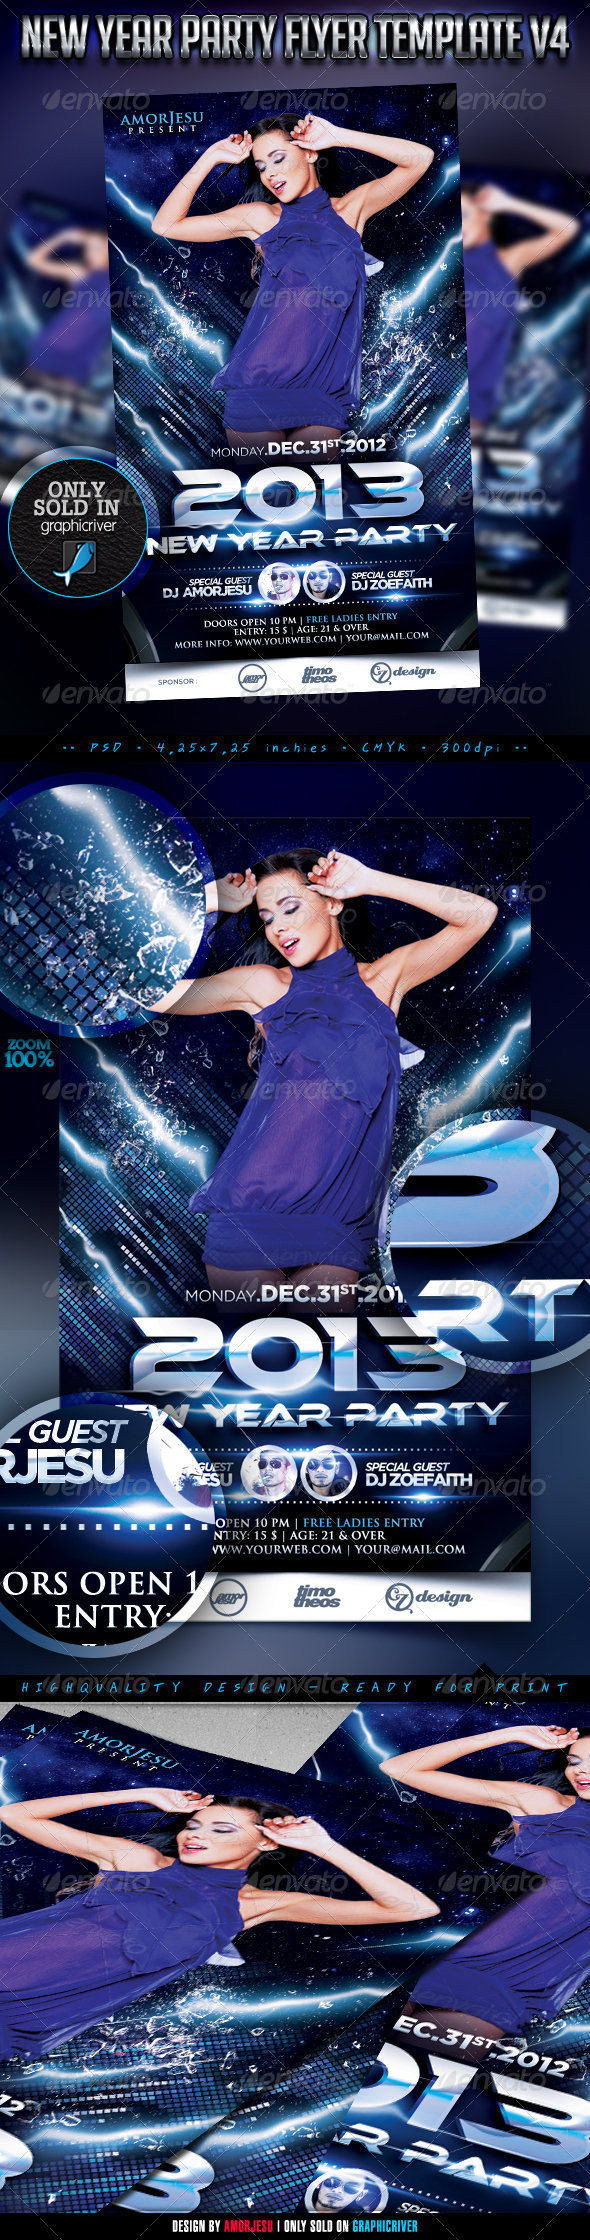 New Year Party Flyer Template V4 - Clubs & Parties Events